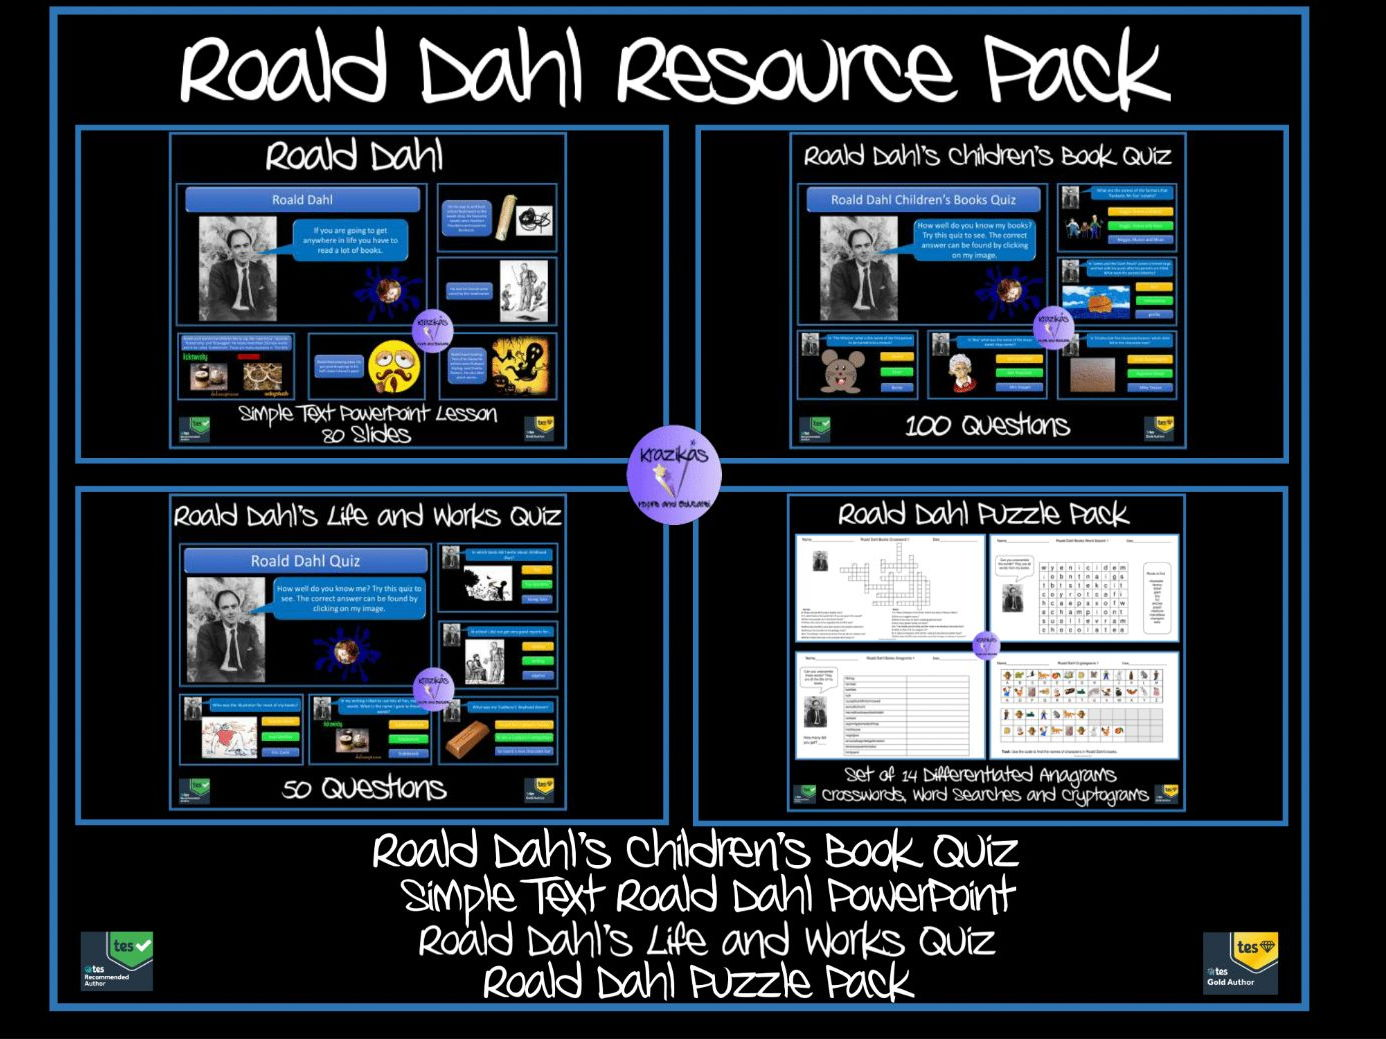 Roald Dahl Resource Pack - Roald Dahl SIMPLE TEXT PowerPoint Lesson / Assembly, 100 Question Children's Books Quiz, 50 Question Life and Works of Roald Dahl Quiz, Set of 14 Differentiated Anagrams, Word  Searches, Crosswords and Cryptograms